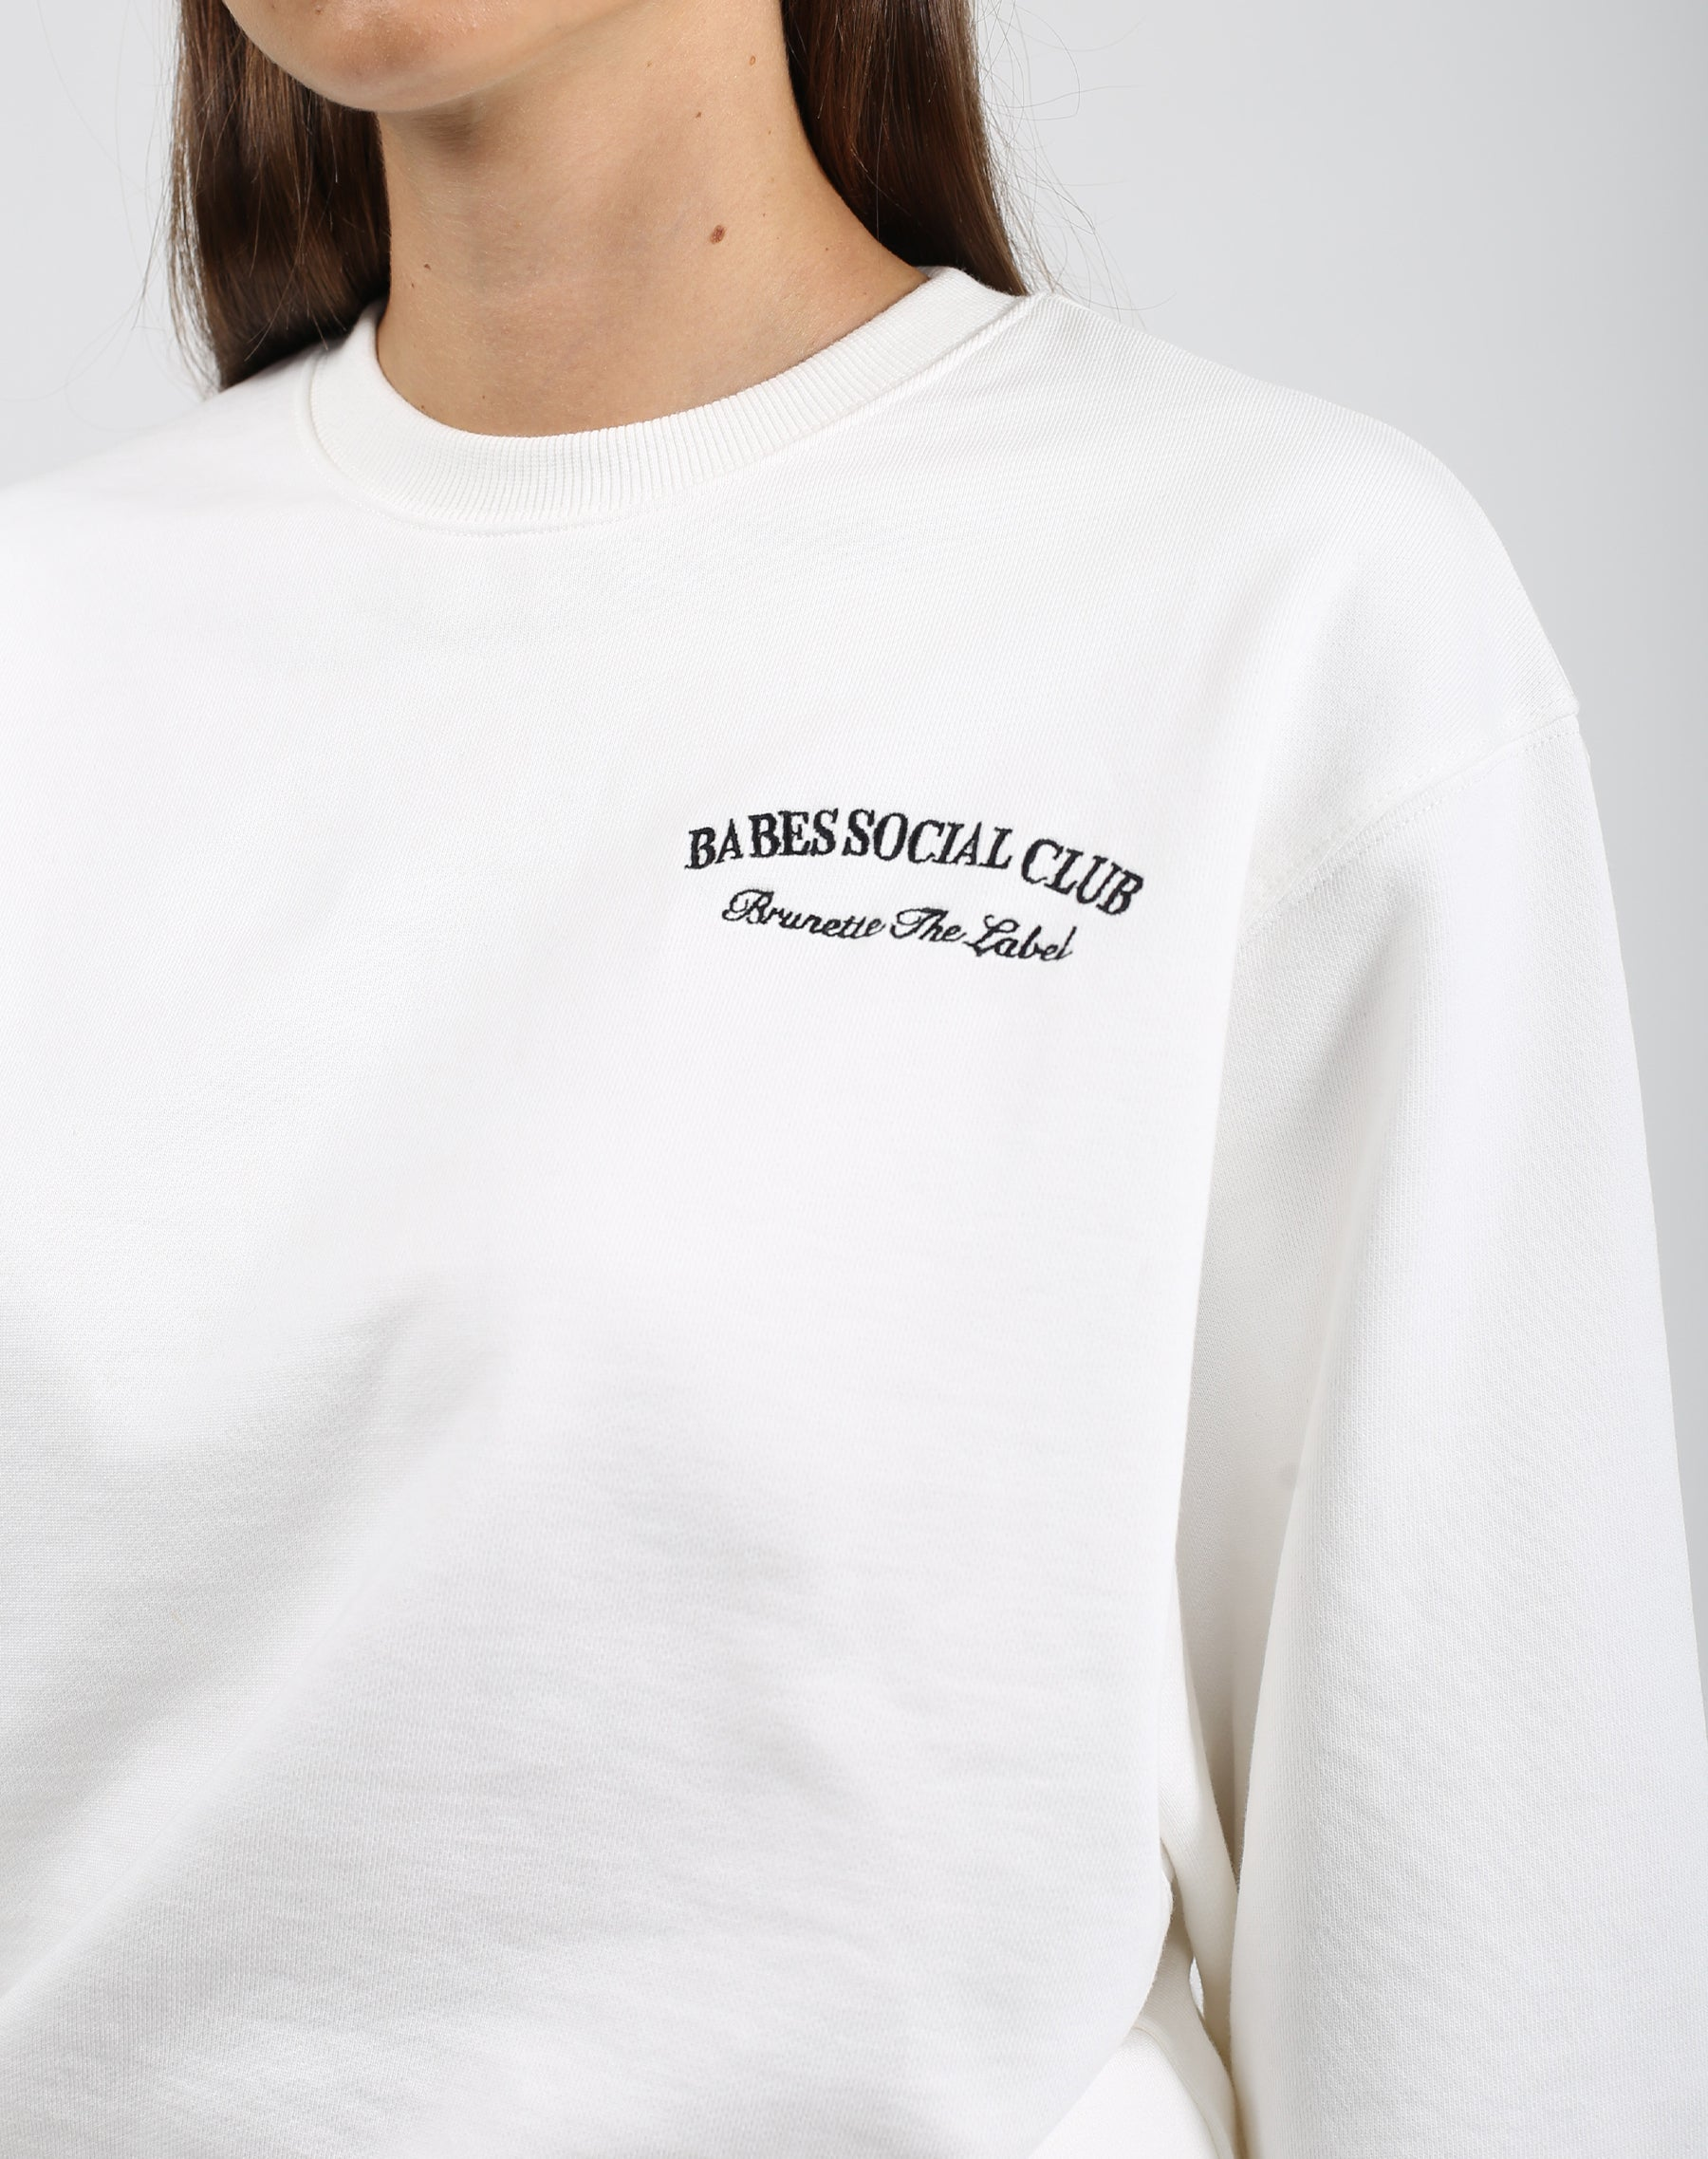 This is an image of the Babes Social Club Best Friend Crew Neck Sweater in Cream by Brunette the Label.